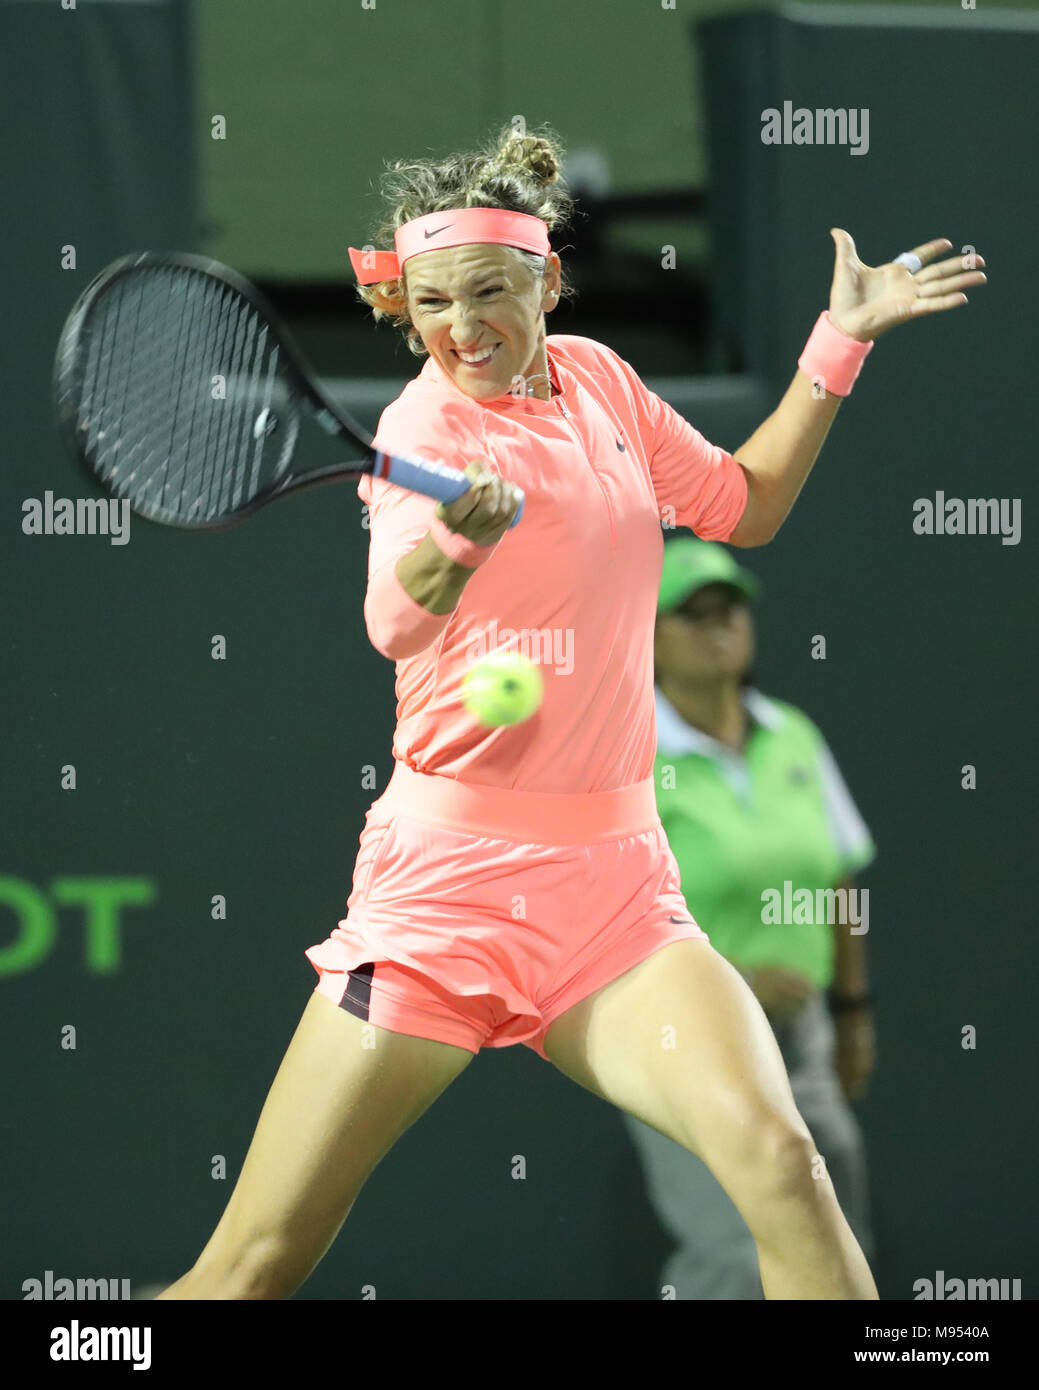 Tennis Icon Stock Photos   Tennis Icon Stock Images - Page 3 - Alamy c14c512f263b